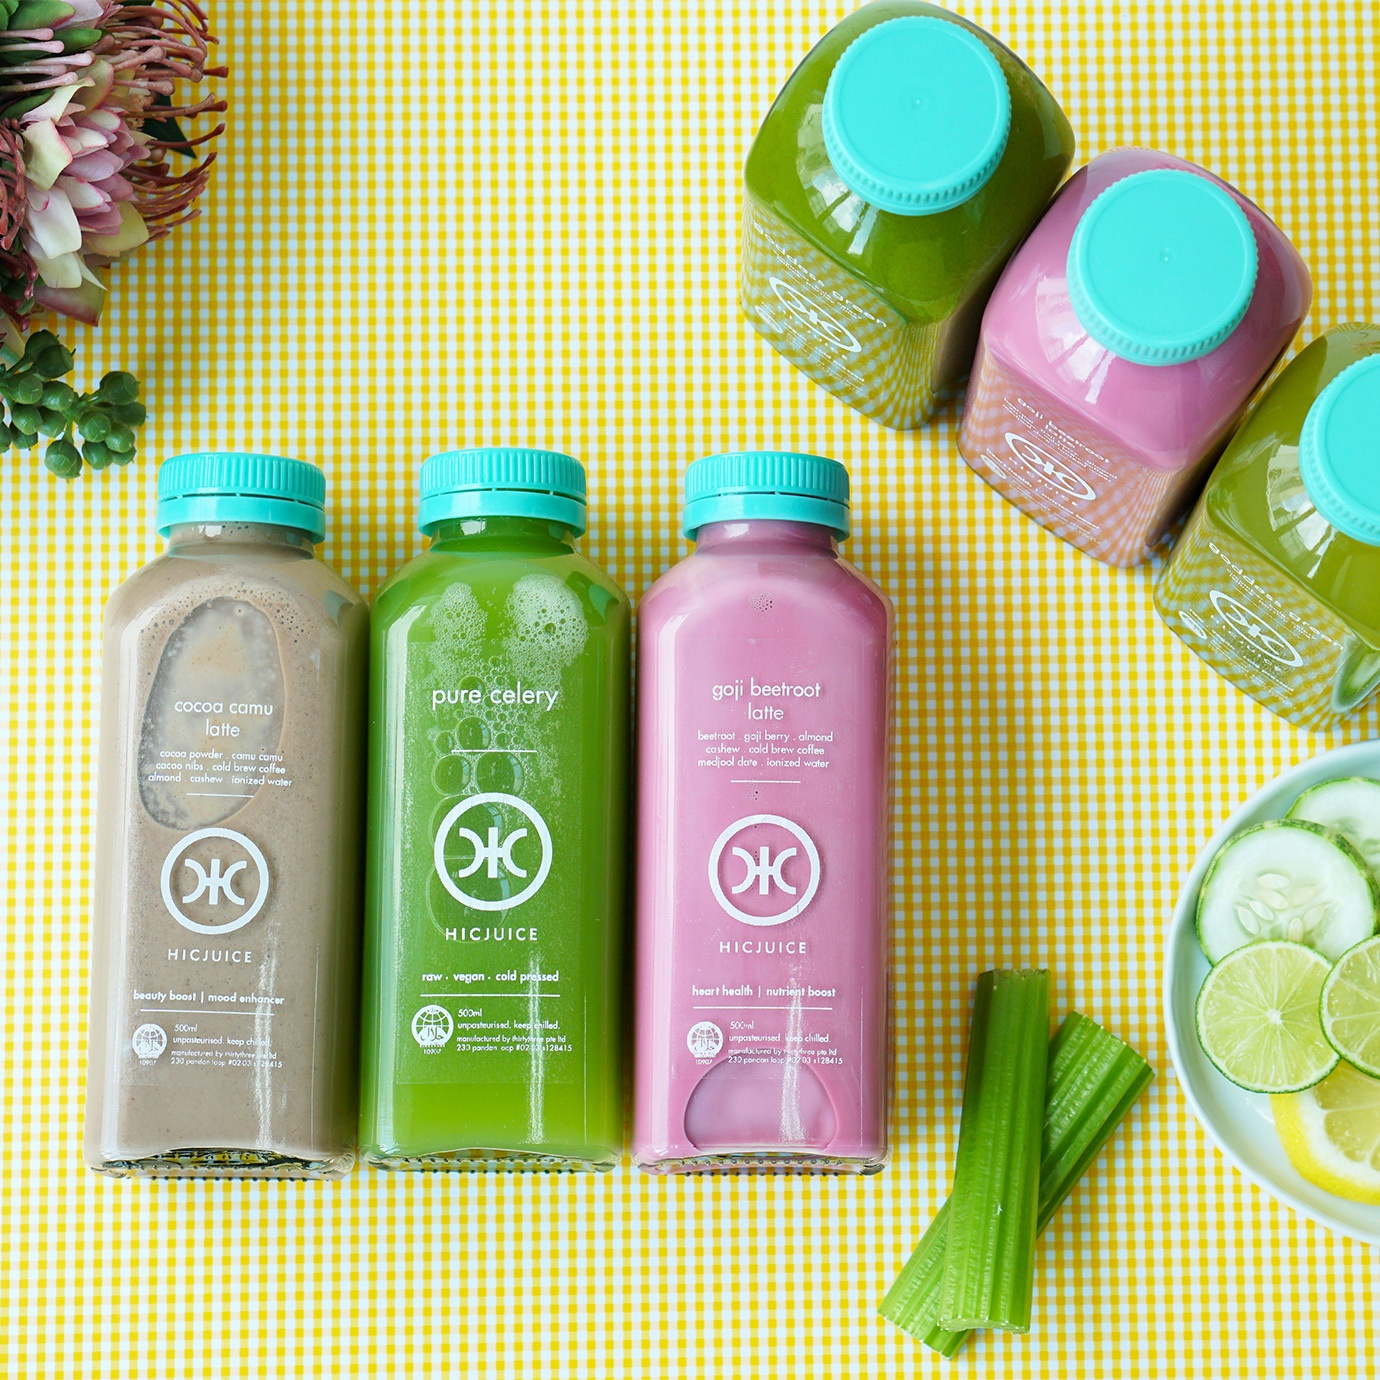 the 5 day morning cleanse